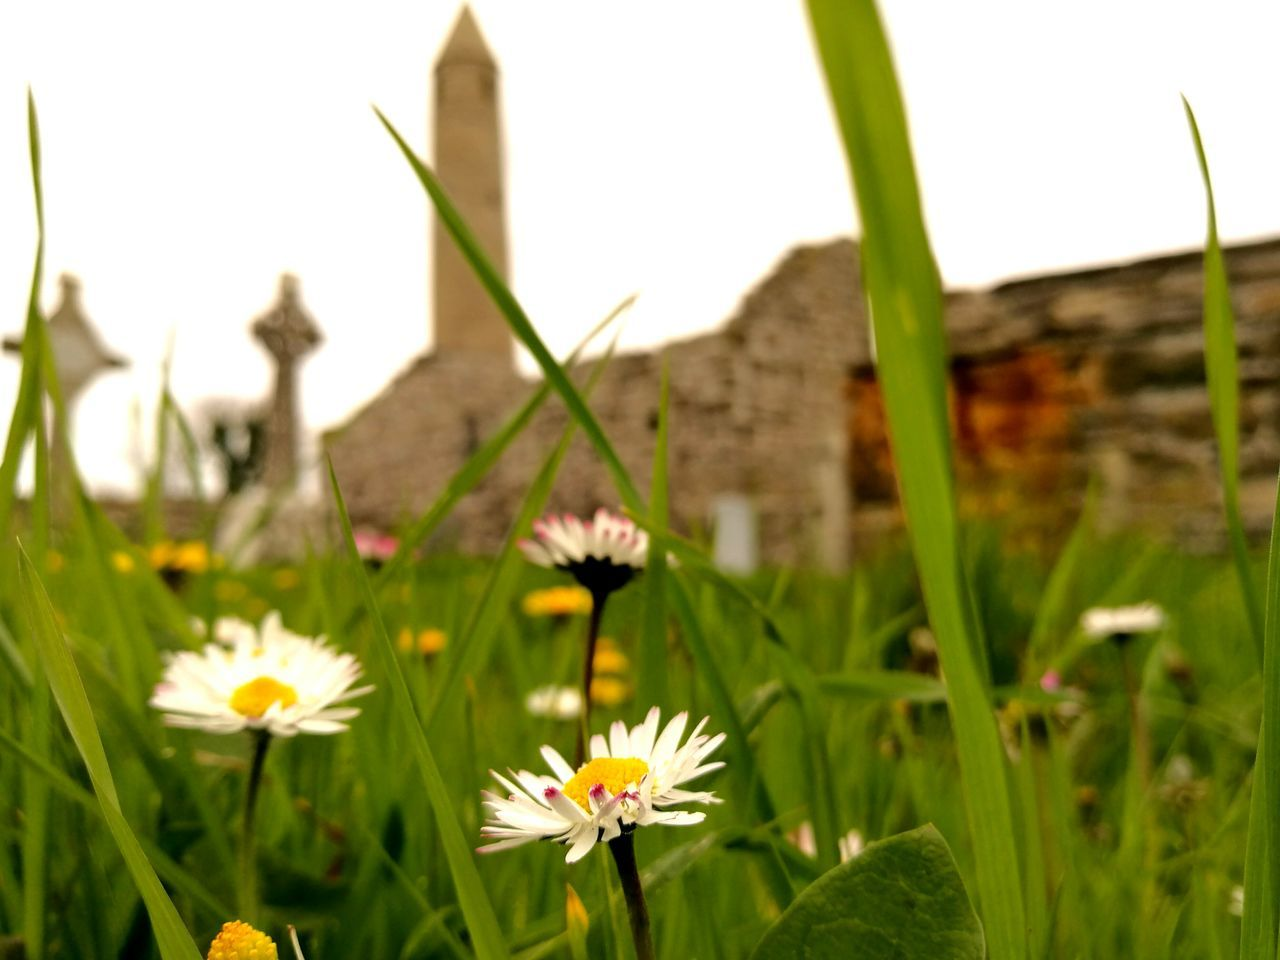 Flower Nature Plant Growth Meadow Wildflower Freshness Close-up Petal Beauty In Nature No People Outdoors Day Green Color Grass Springtime Ruins Round Tower Rapunzel's Tower Fairytale  Wild Atlantic Way Kerry Ireland Architecture Tranquility Ireland ☘ The Great Outdoors - 2017 EyeEm Awards